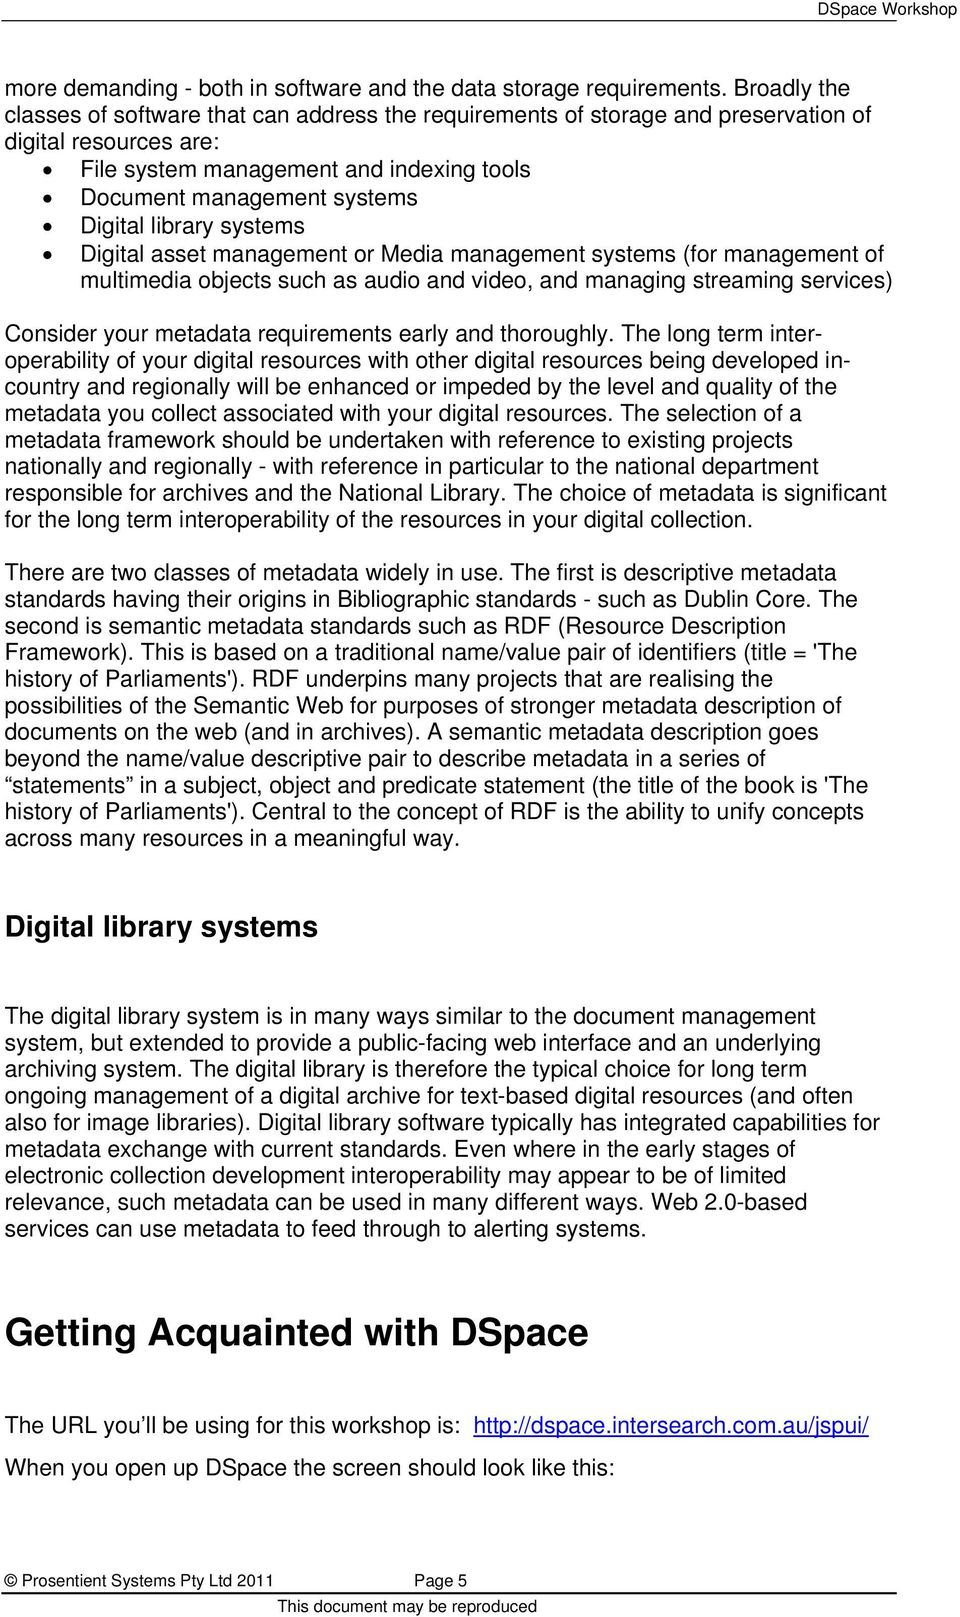 library systems Digital asset management or Media management systems (for management of multimedia objects such as audio and video, and managing streaming services) Consider your metadata